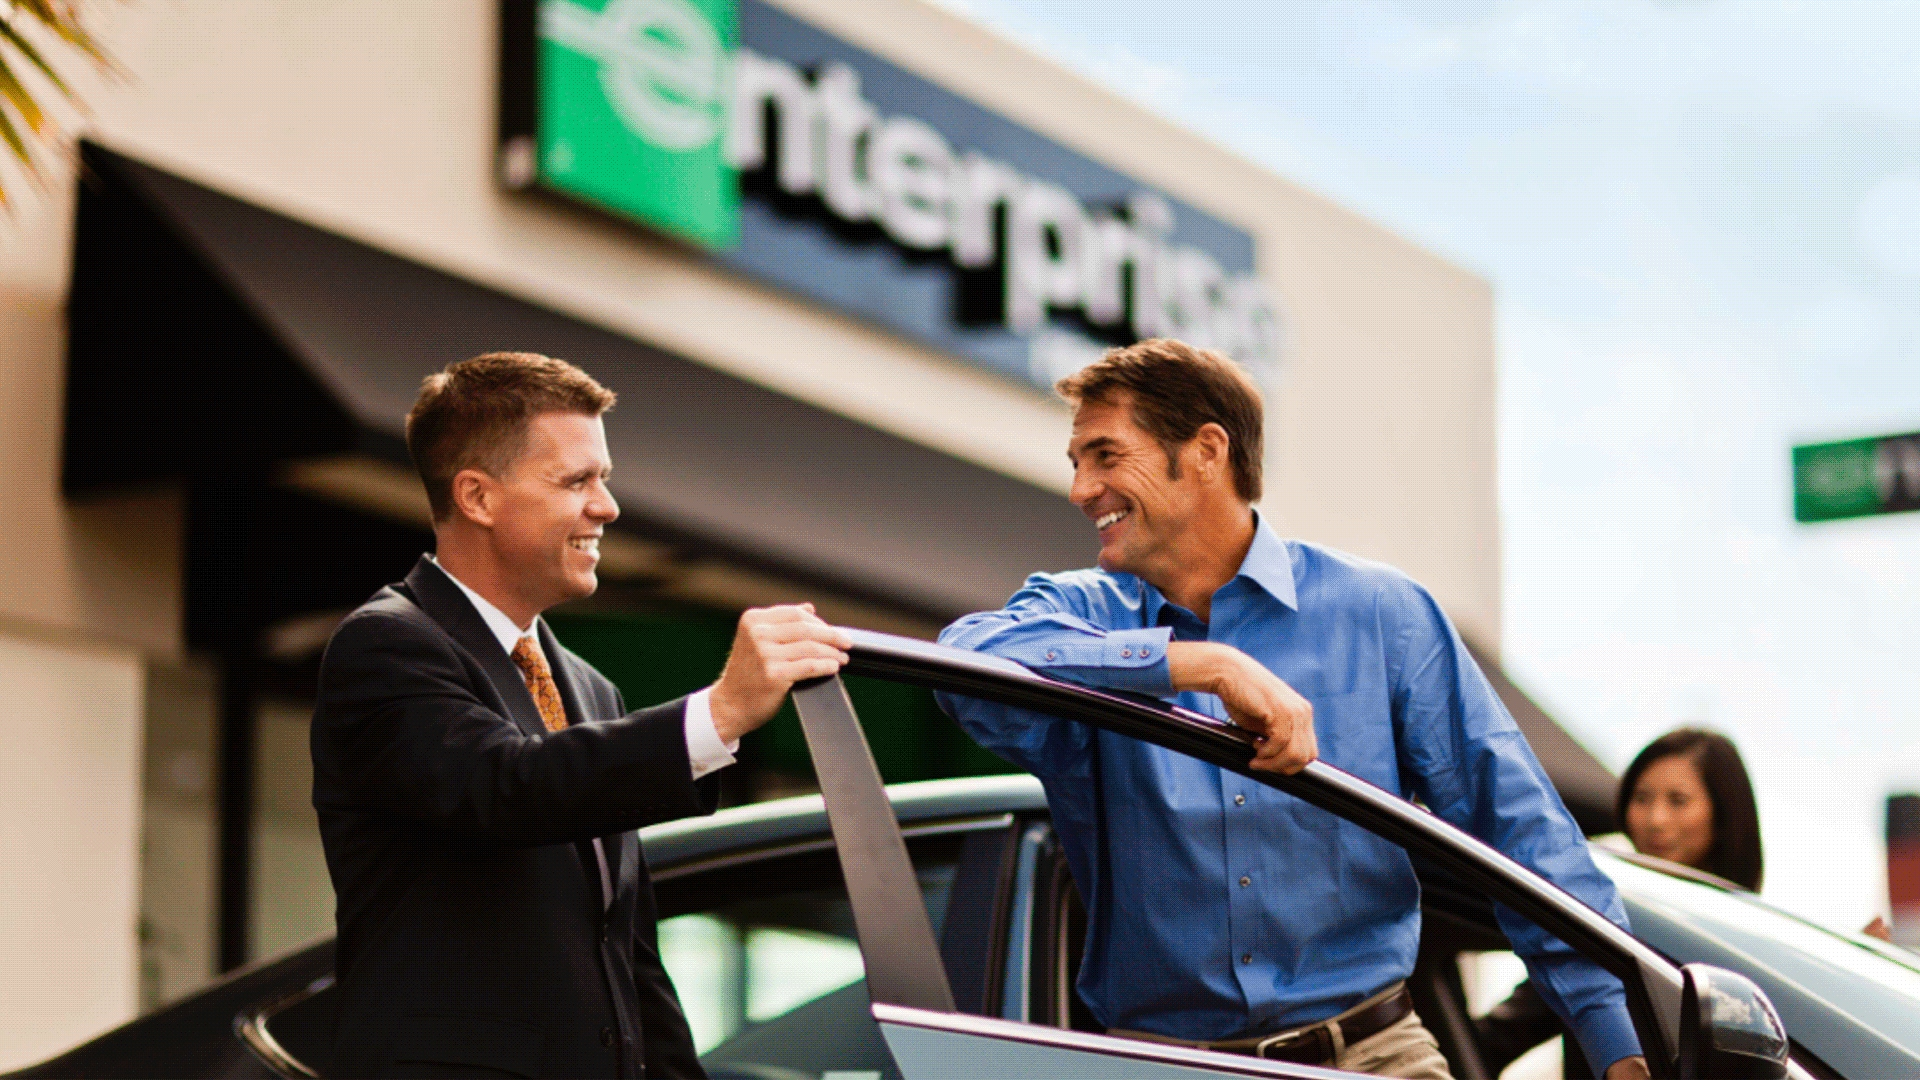 Enterprise Car Pick You Up